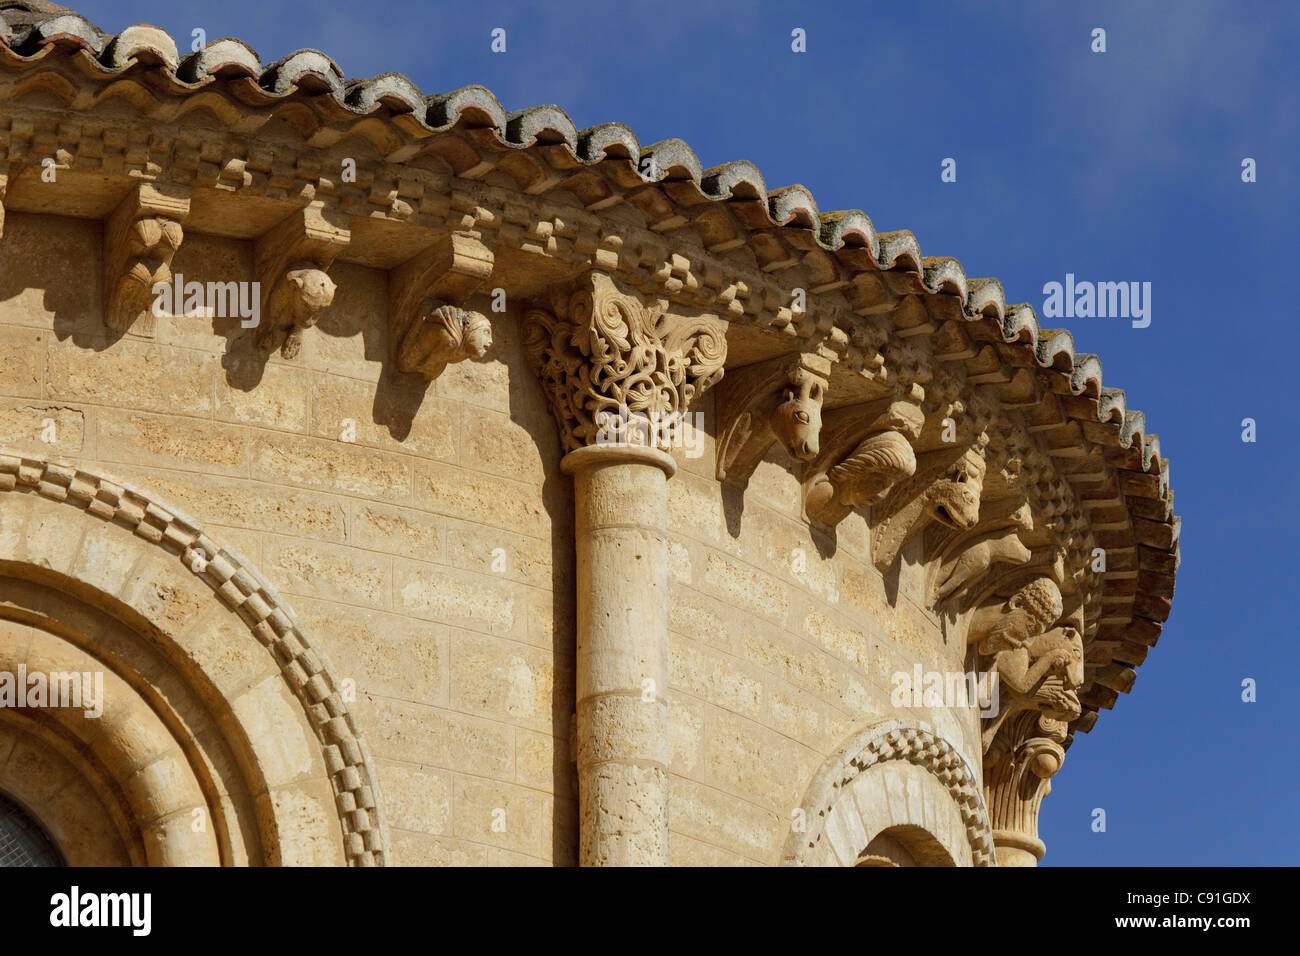 Detail of the church Iglesia San Martin Fromista Province of Palencia Old Castile Catile-Leon Castilla y Leon Northern - Stock Image